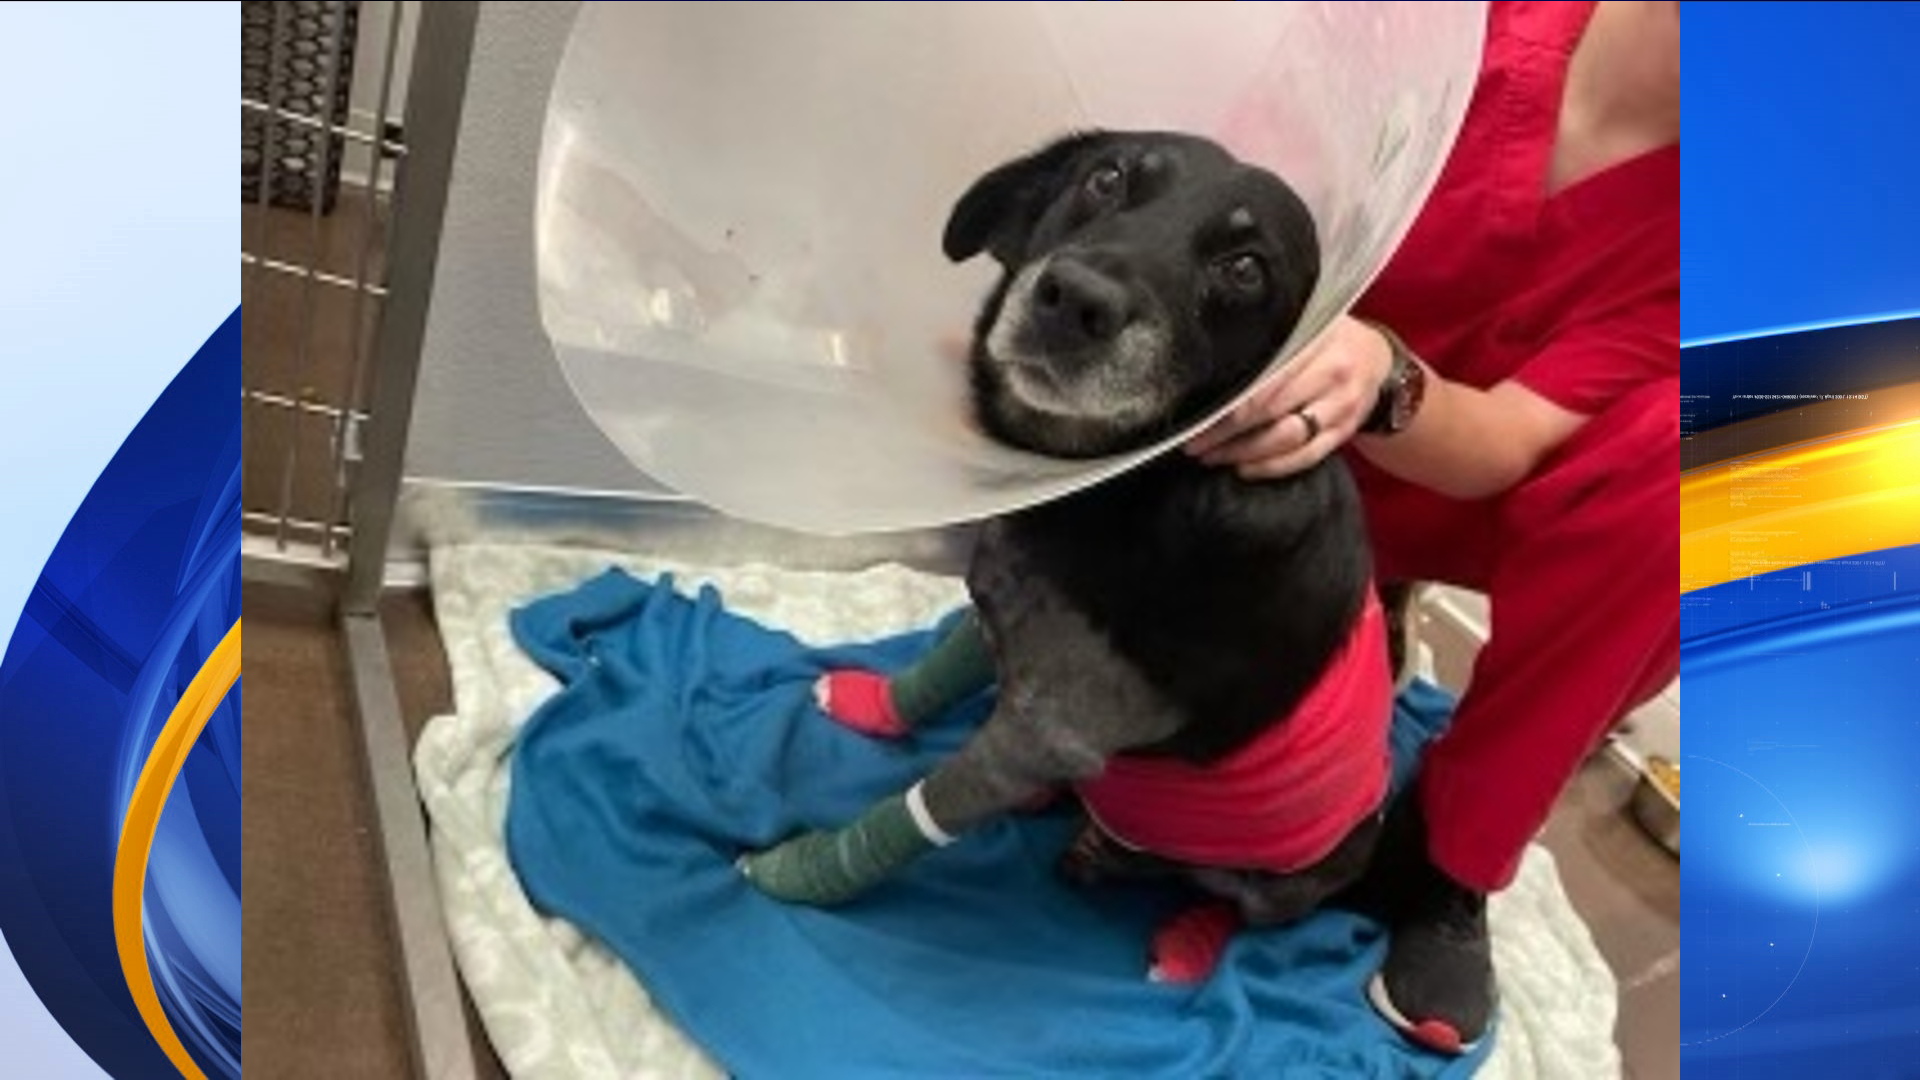 According to Animal Control Director Cheryl Jones, the dog, later named Frank, was found chained to a pole with severe injuries.